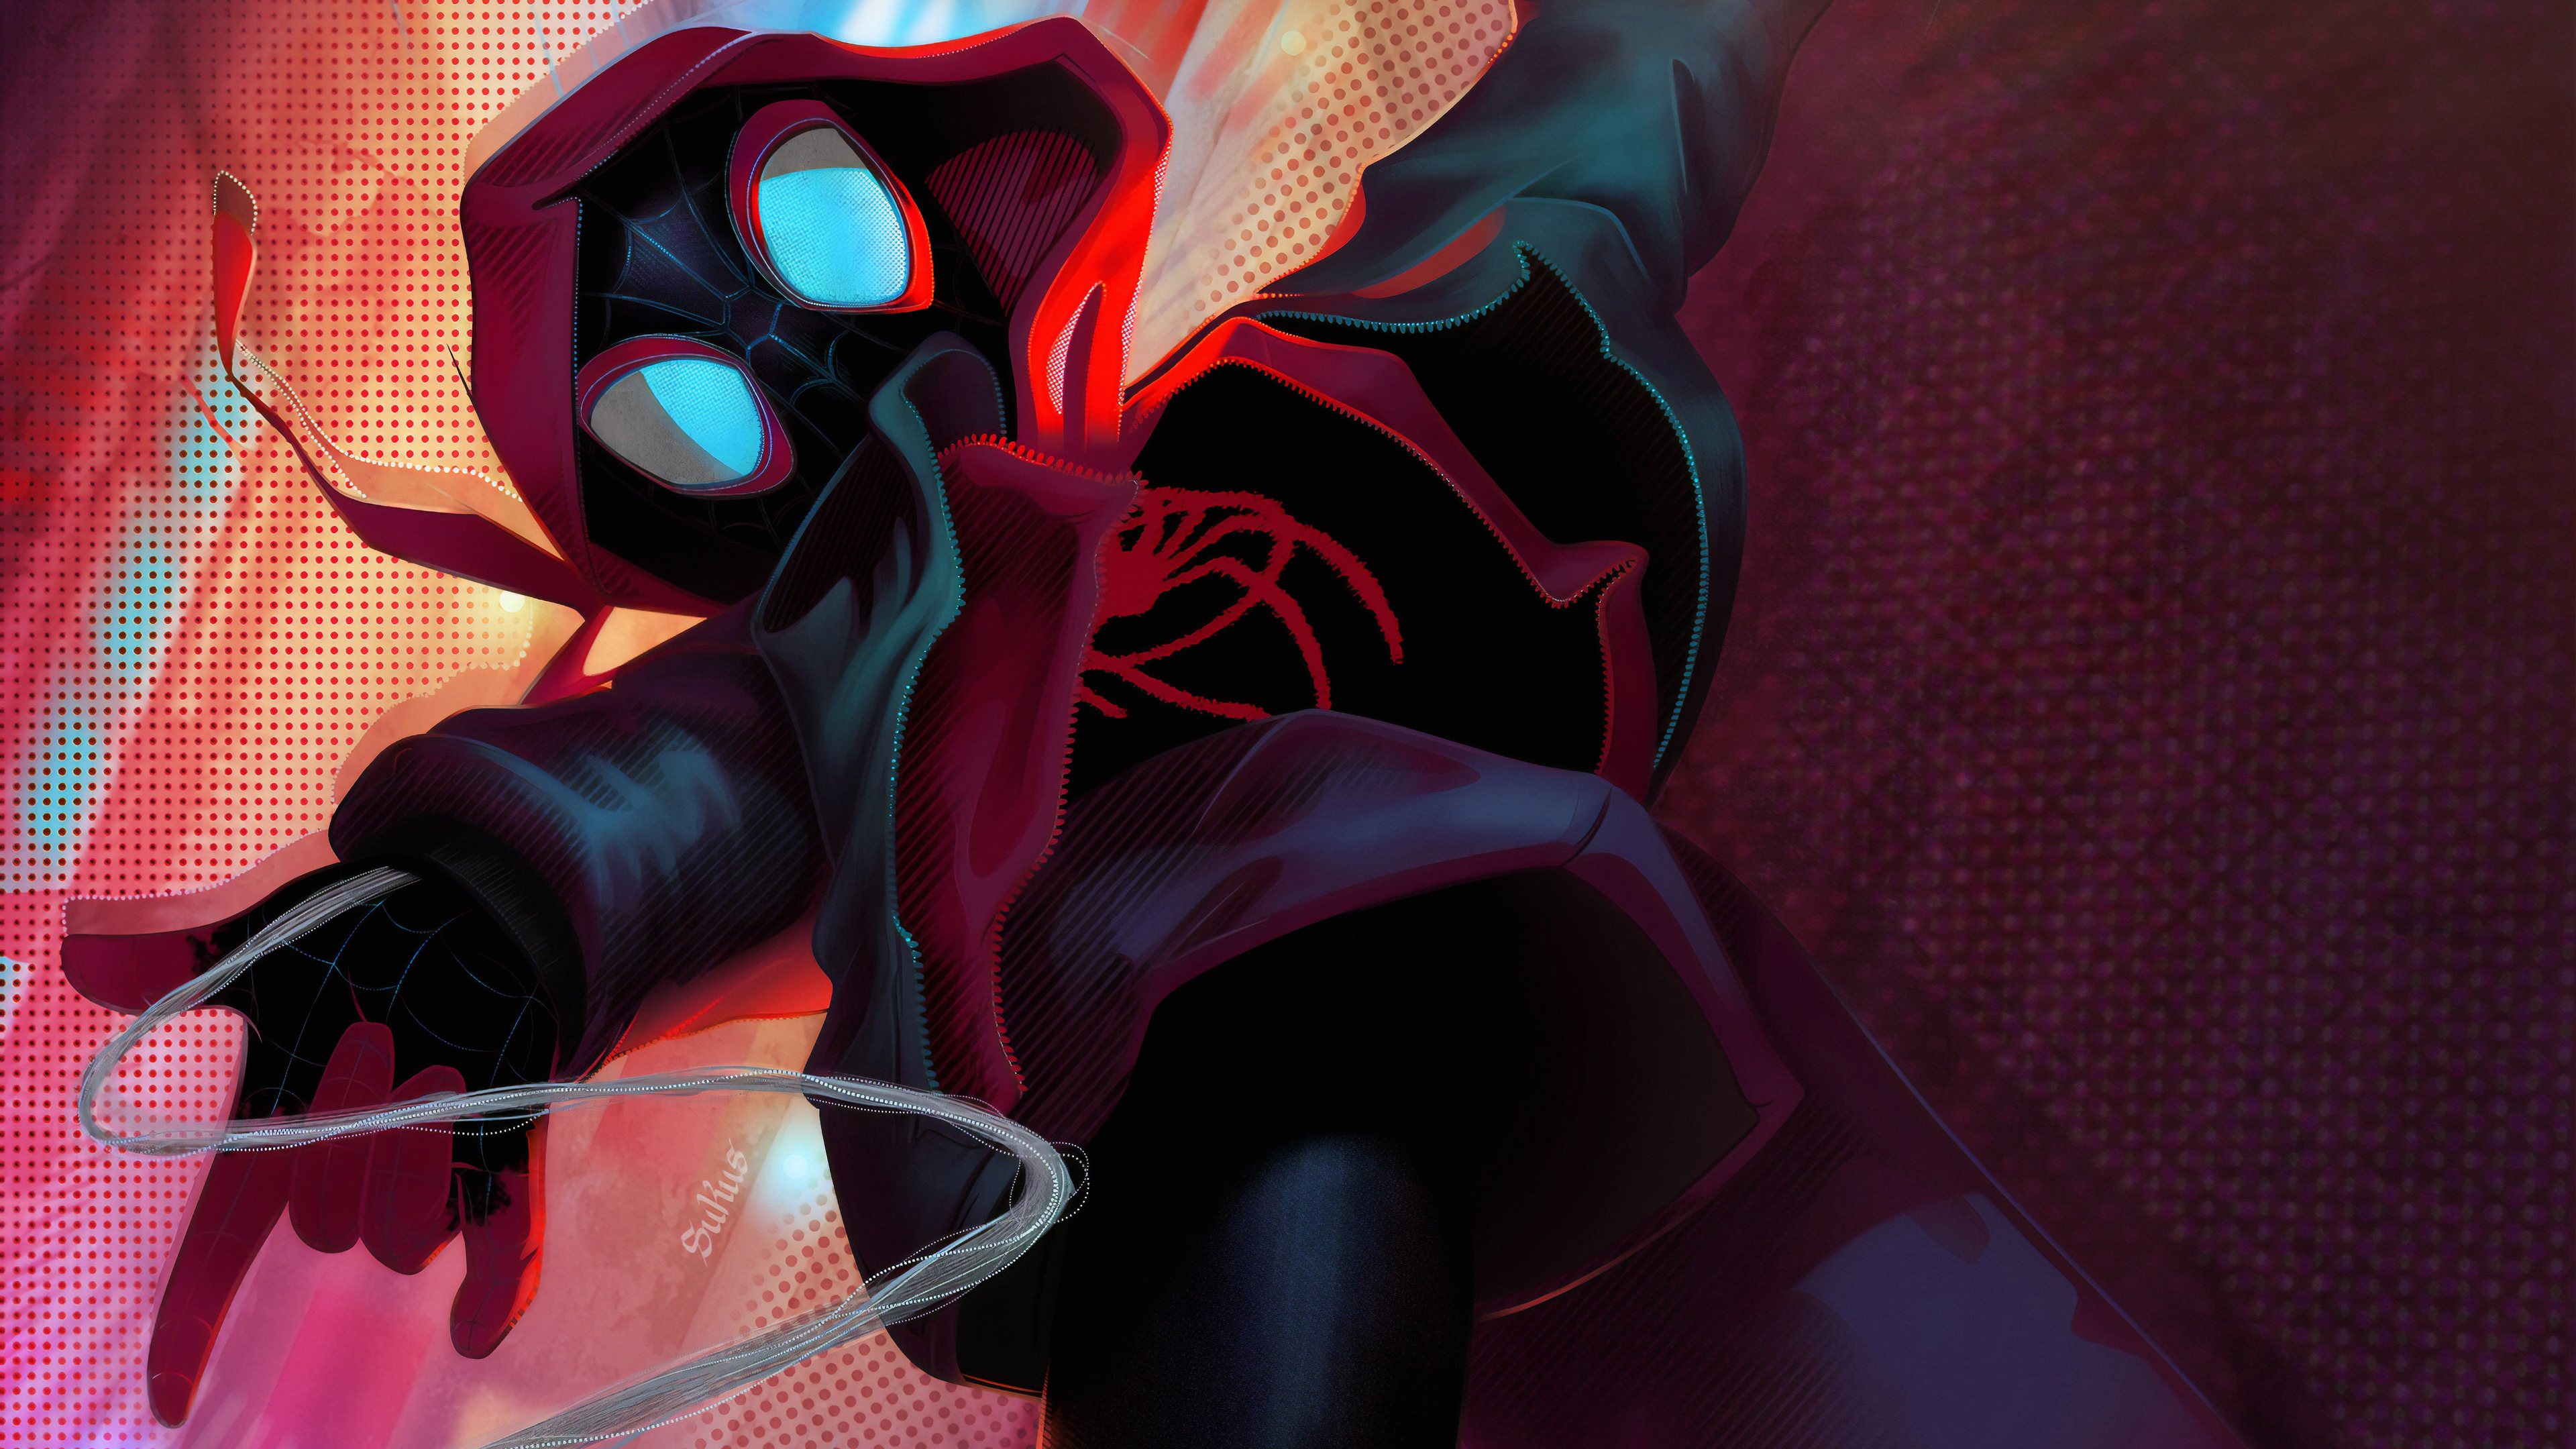 new miles spider 1572368220 - New Miles Spider - superheroes wallpapers, spiderman wallpapers, hd-wallpapers, digital art wallpapers, artwork wallpapers, artstation wallpapers, art wallpapers, 4k-wallpapers